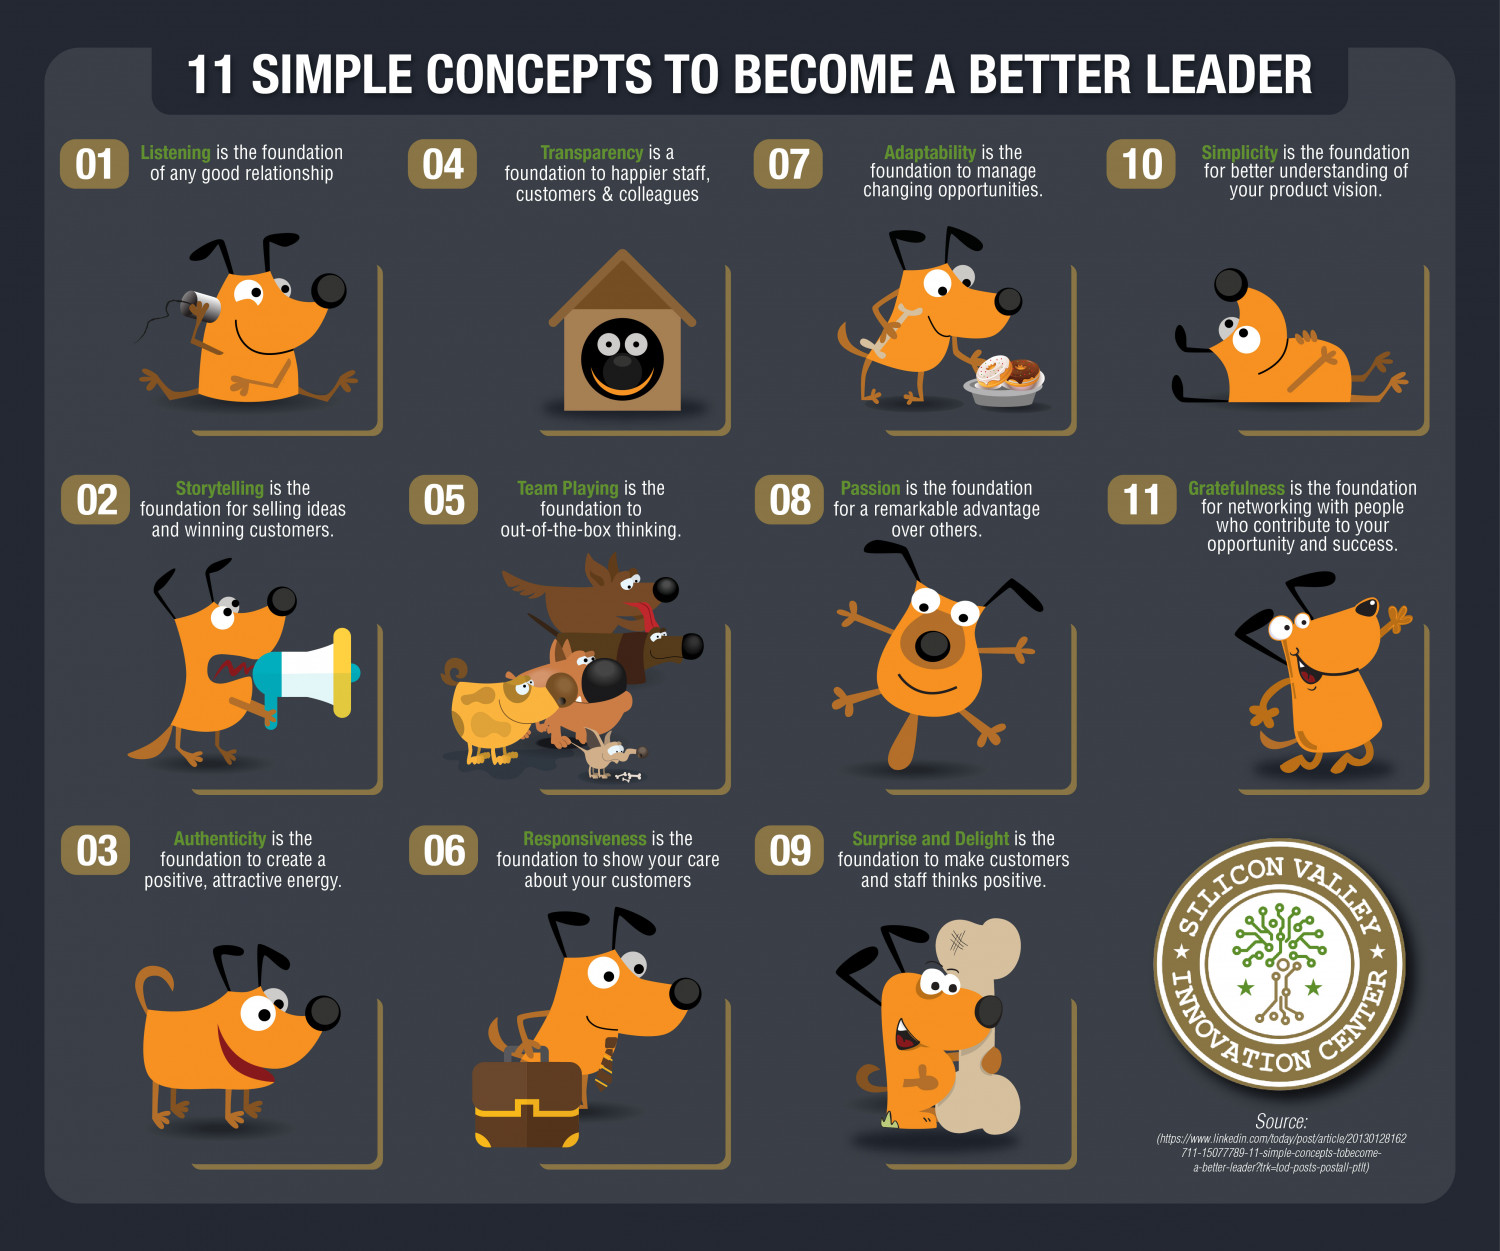 11 Simple Concepts to Become a Better Leader | Visual.ly